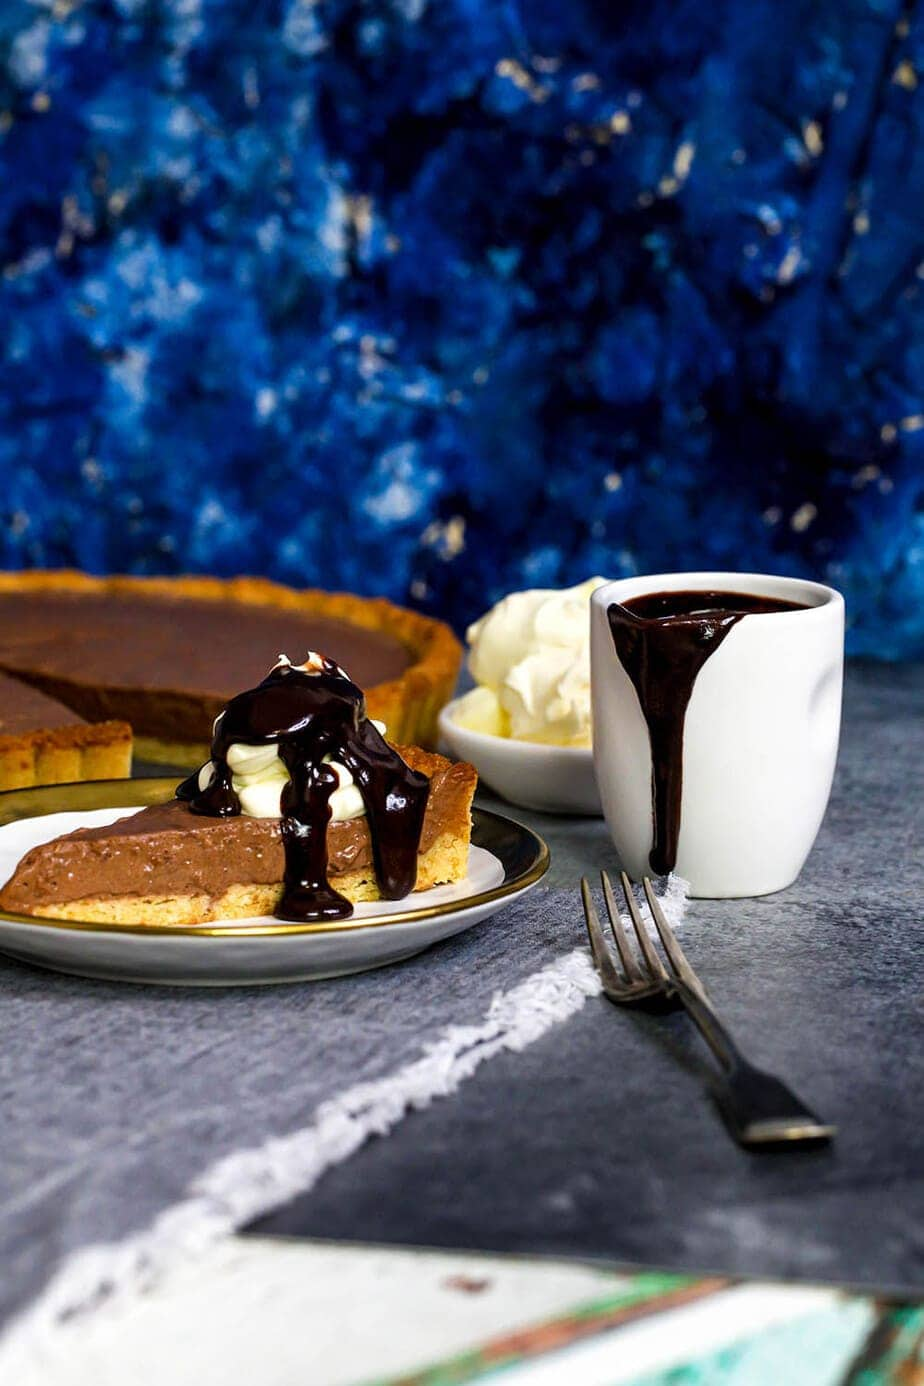 chocolate bavarian pie and sauce on grey table